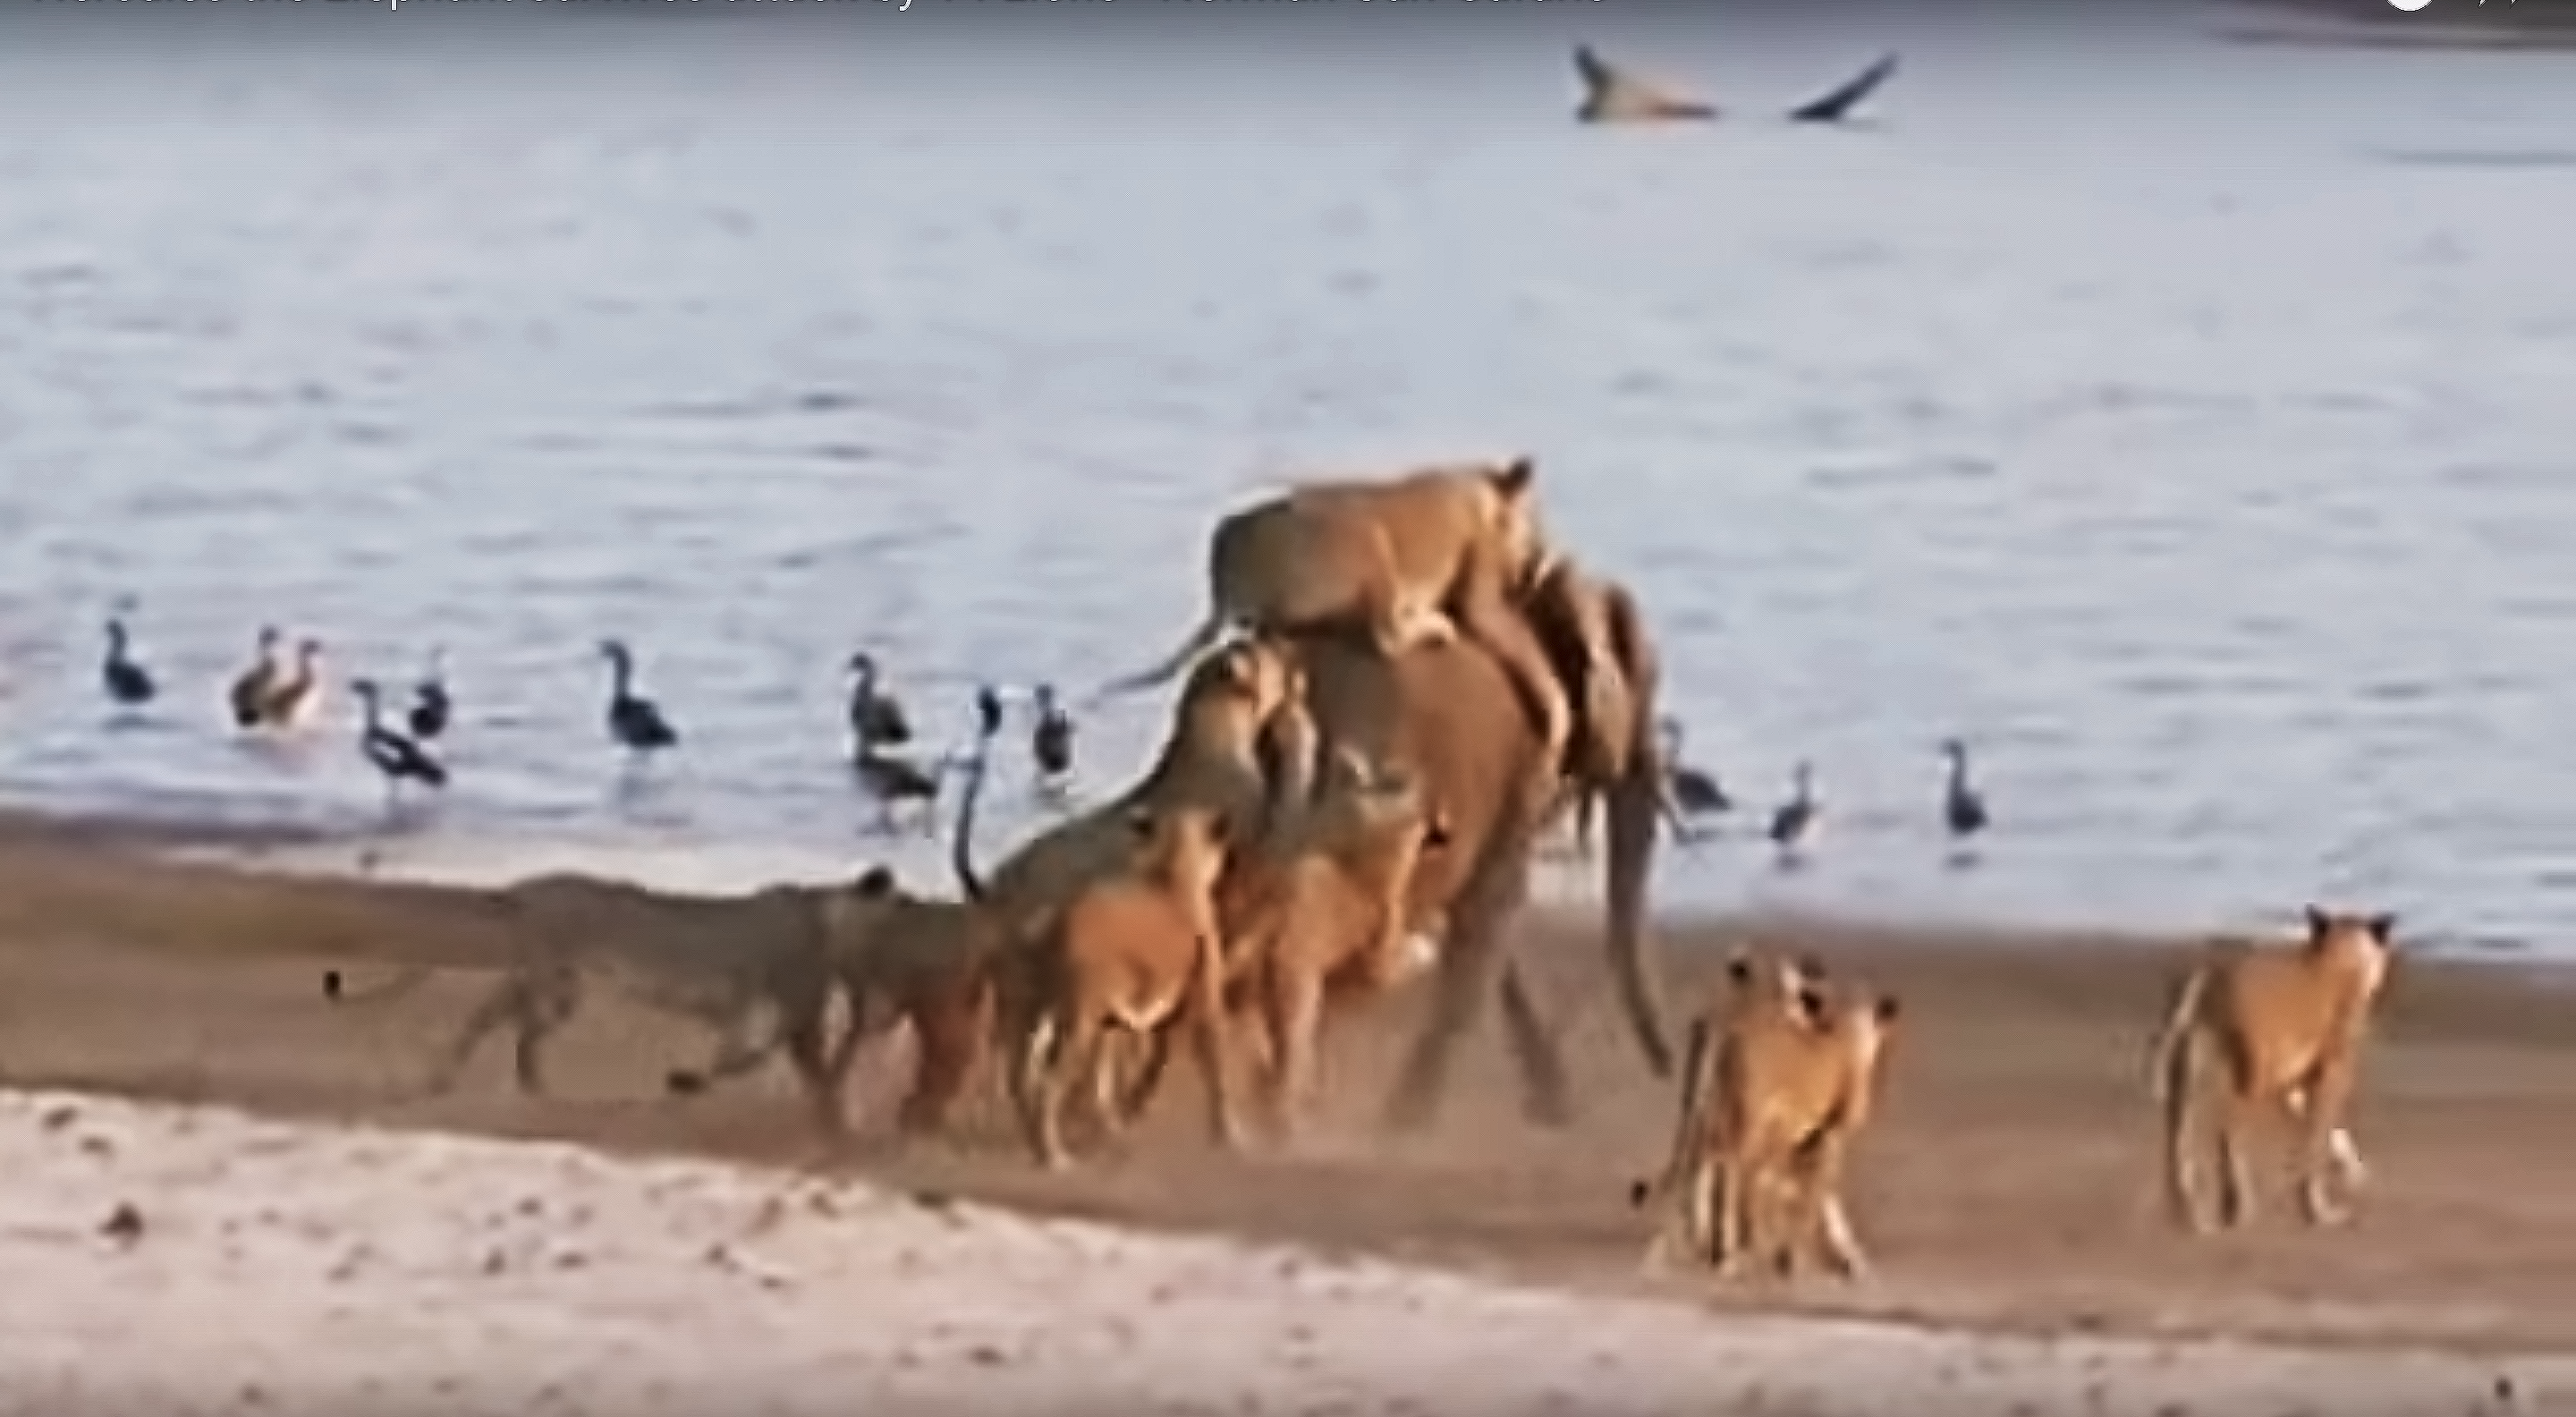 Incredible Video: Baby Elephant Fends Off, Outsmarts, Escapes 14 Attacking Lions